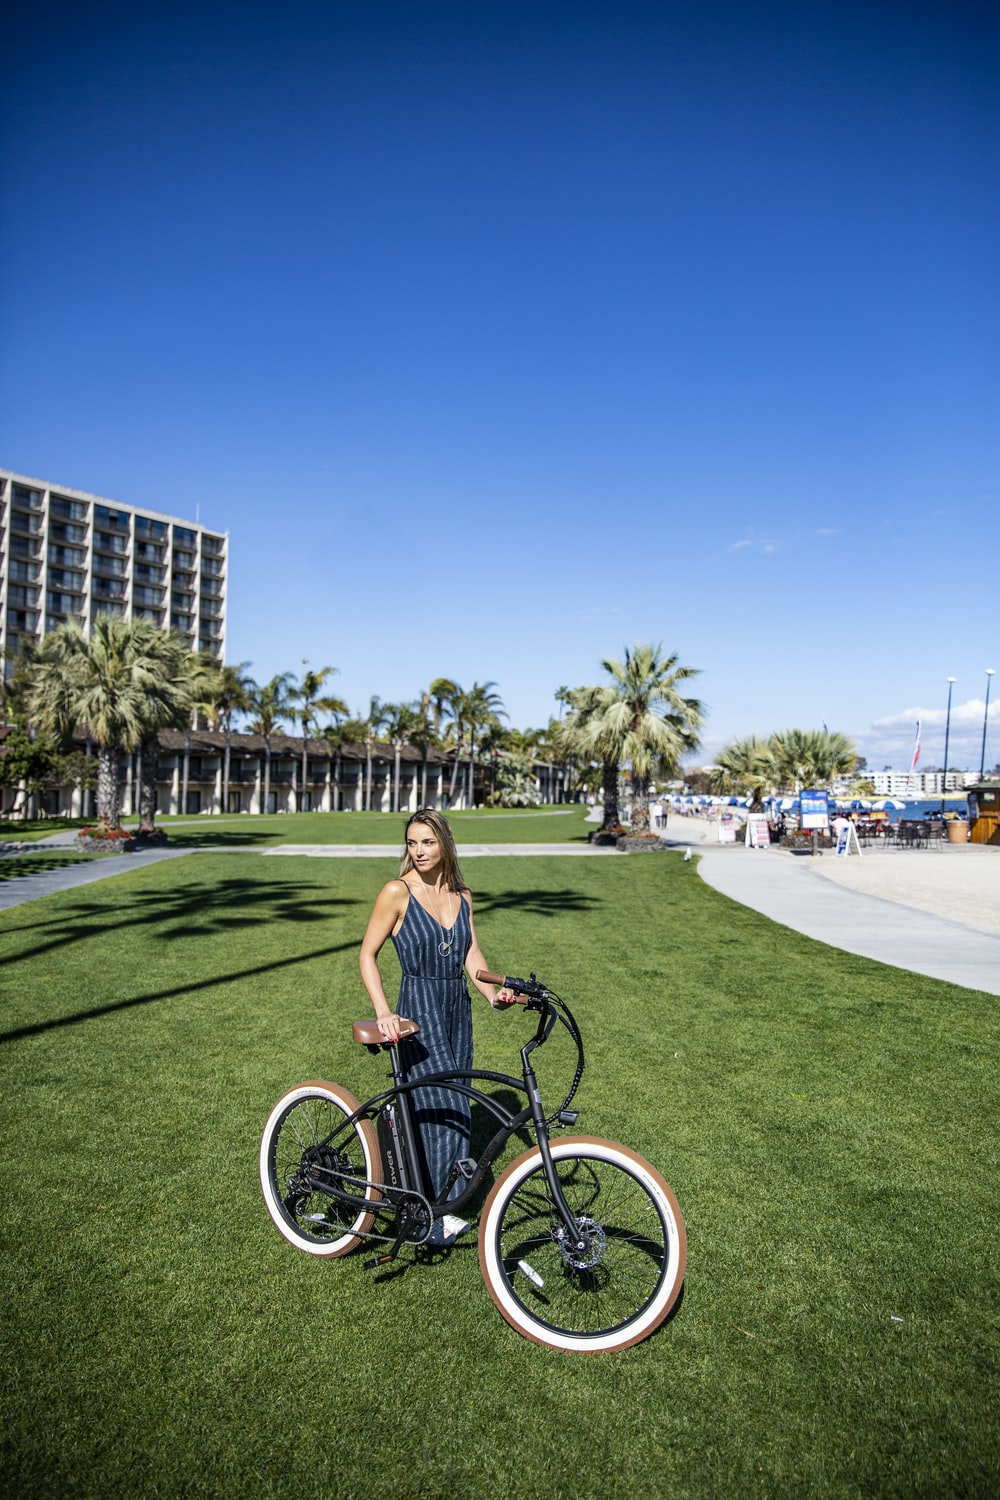 woman in black tank top riding on bicycle on green grass field during daytime